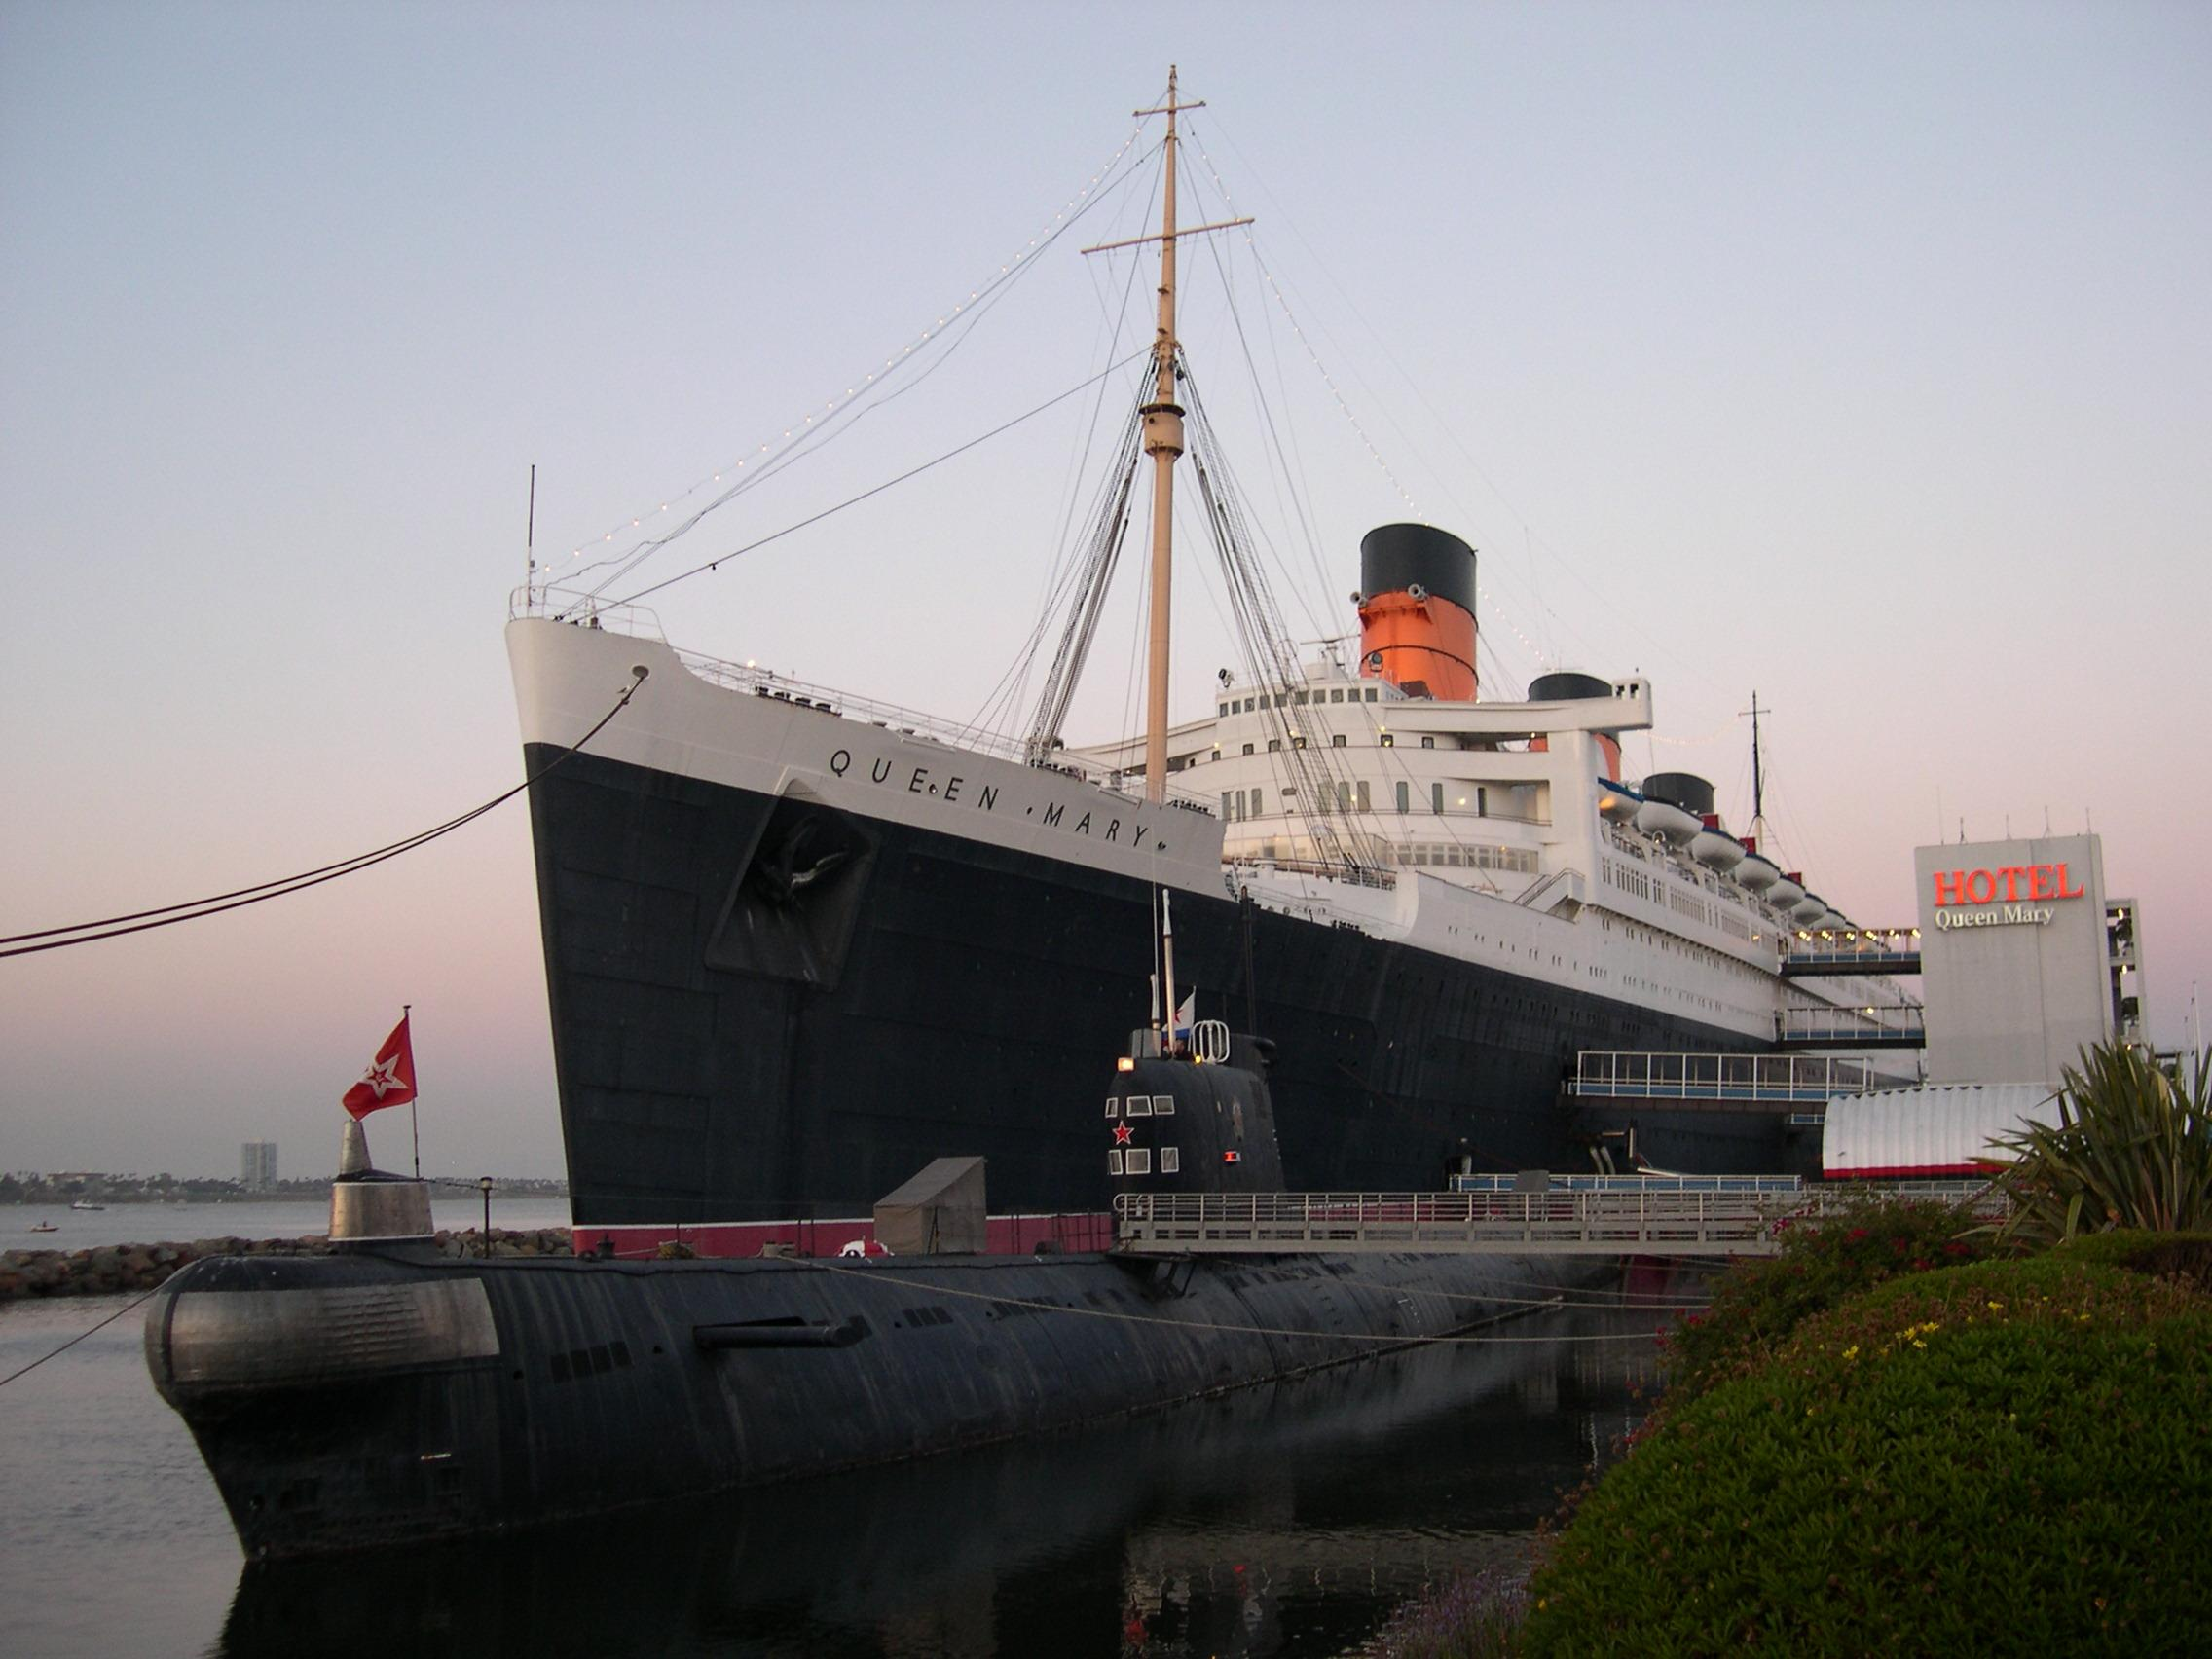 Vessels' to Film On the Haunted Queen Mary!